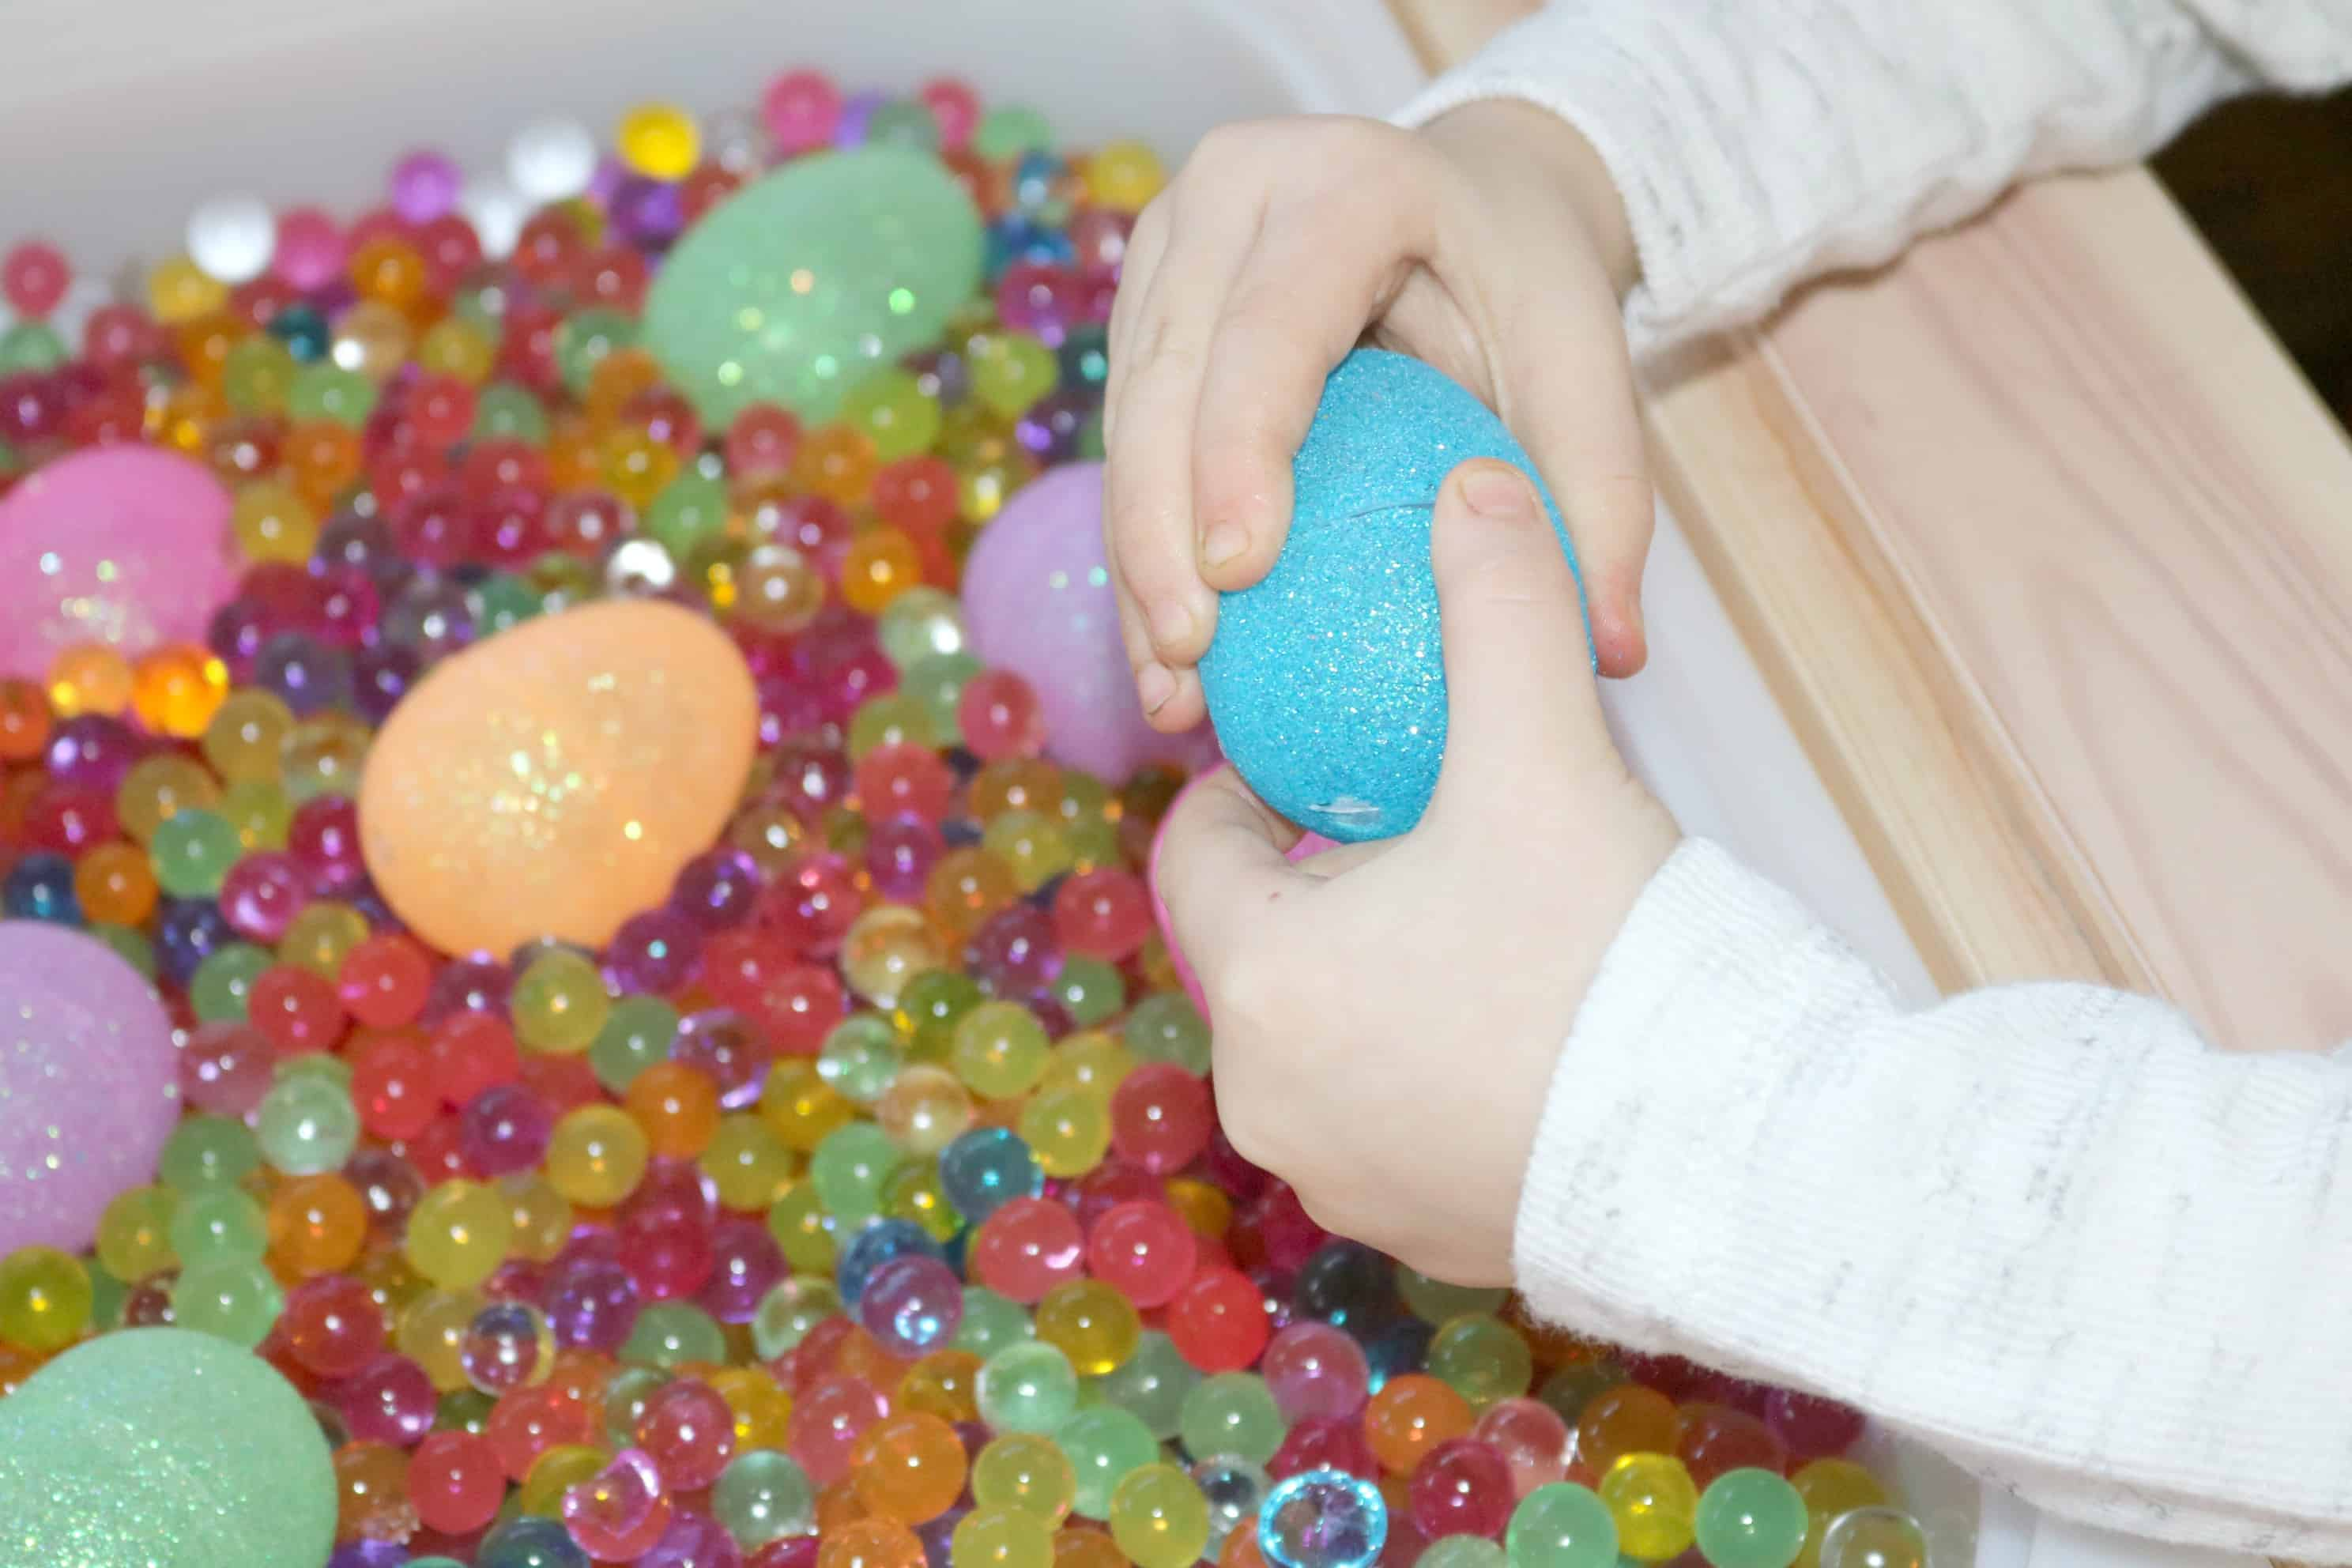 Squishy Beads + Sparkly Eggs Easter Sensory Activity for Little Kids